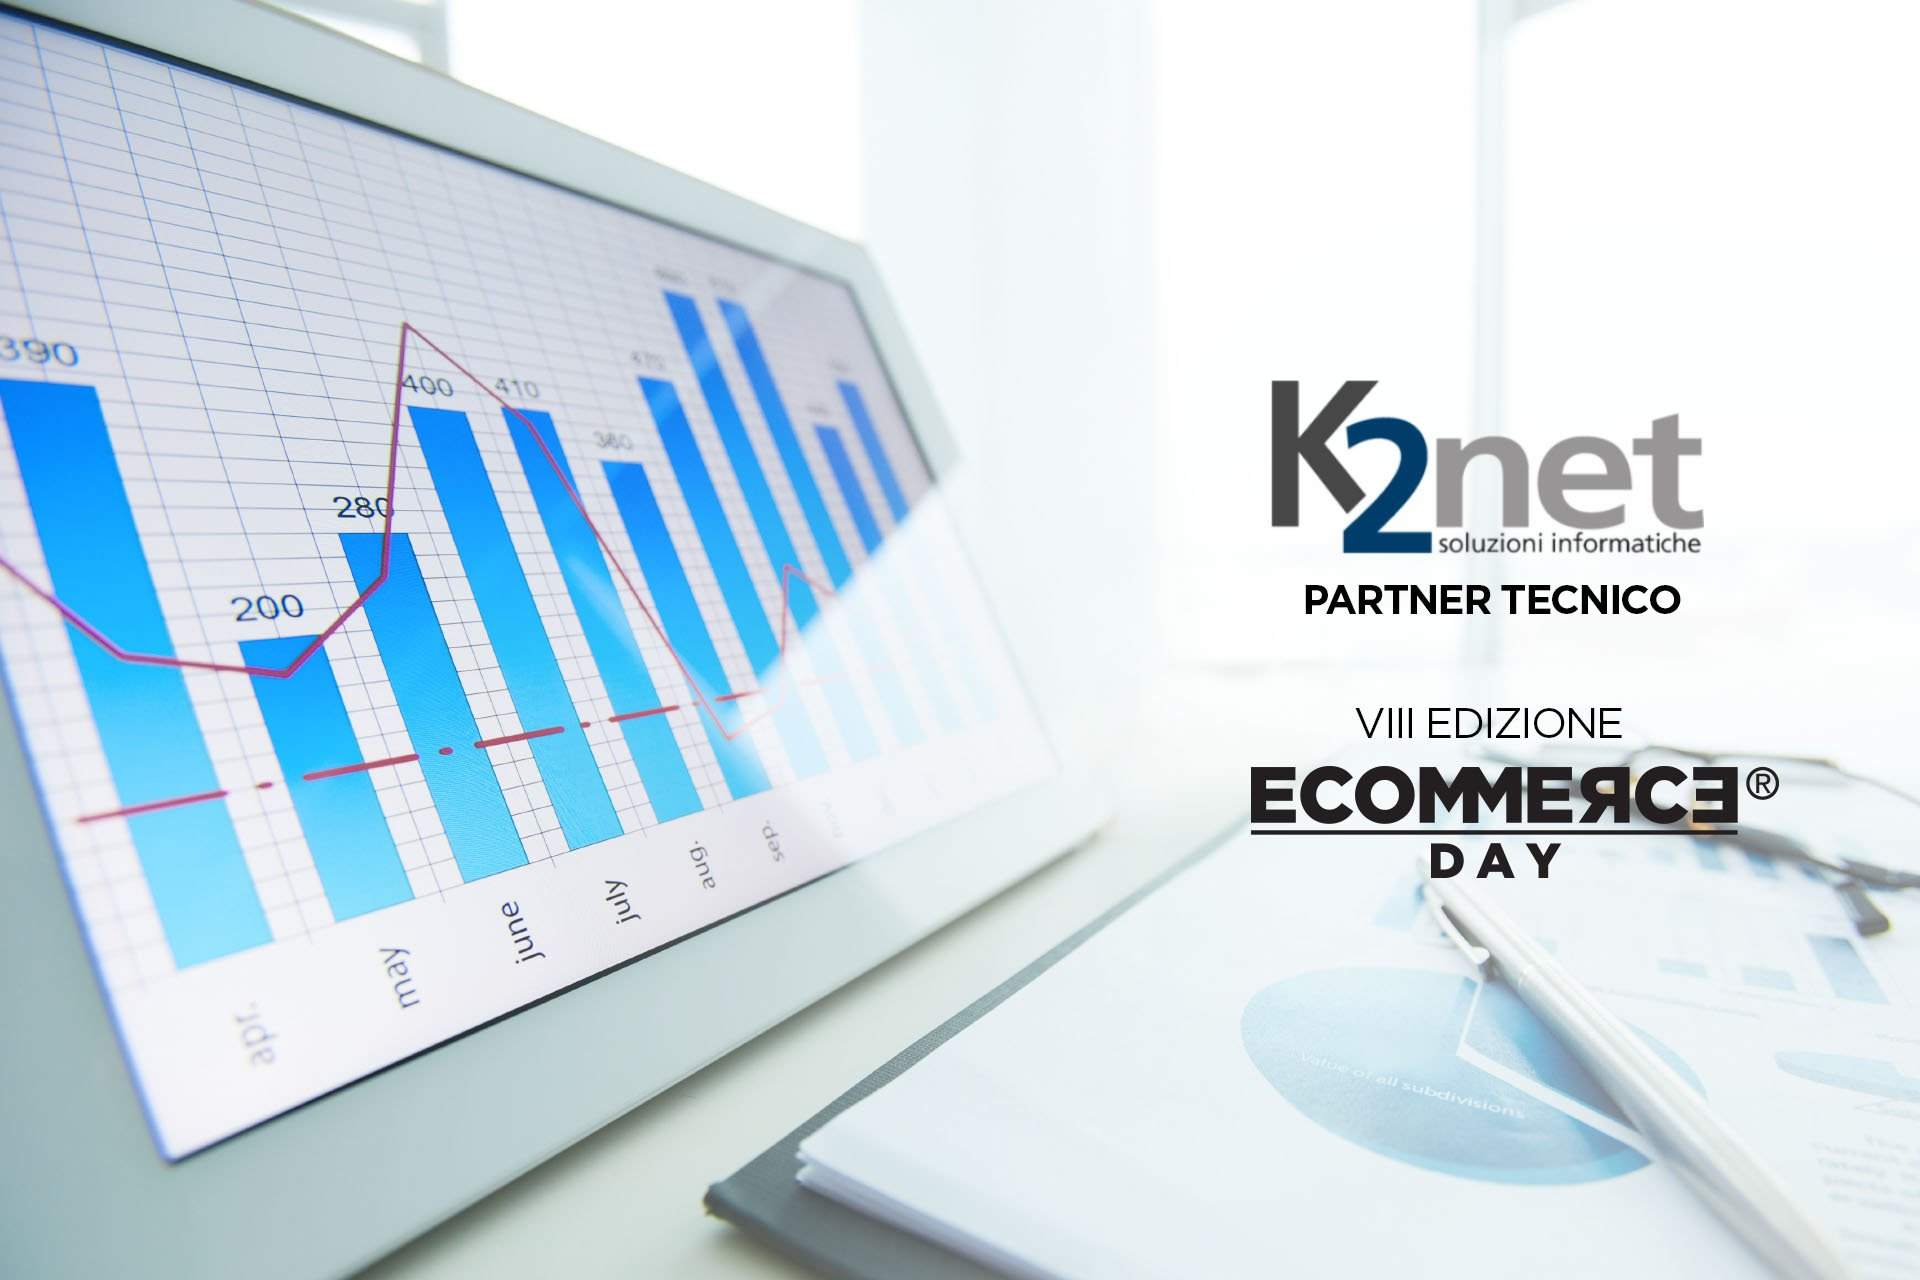 K2NET partner tecnico ECDAY2018